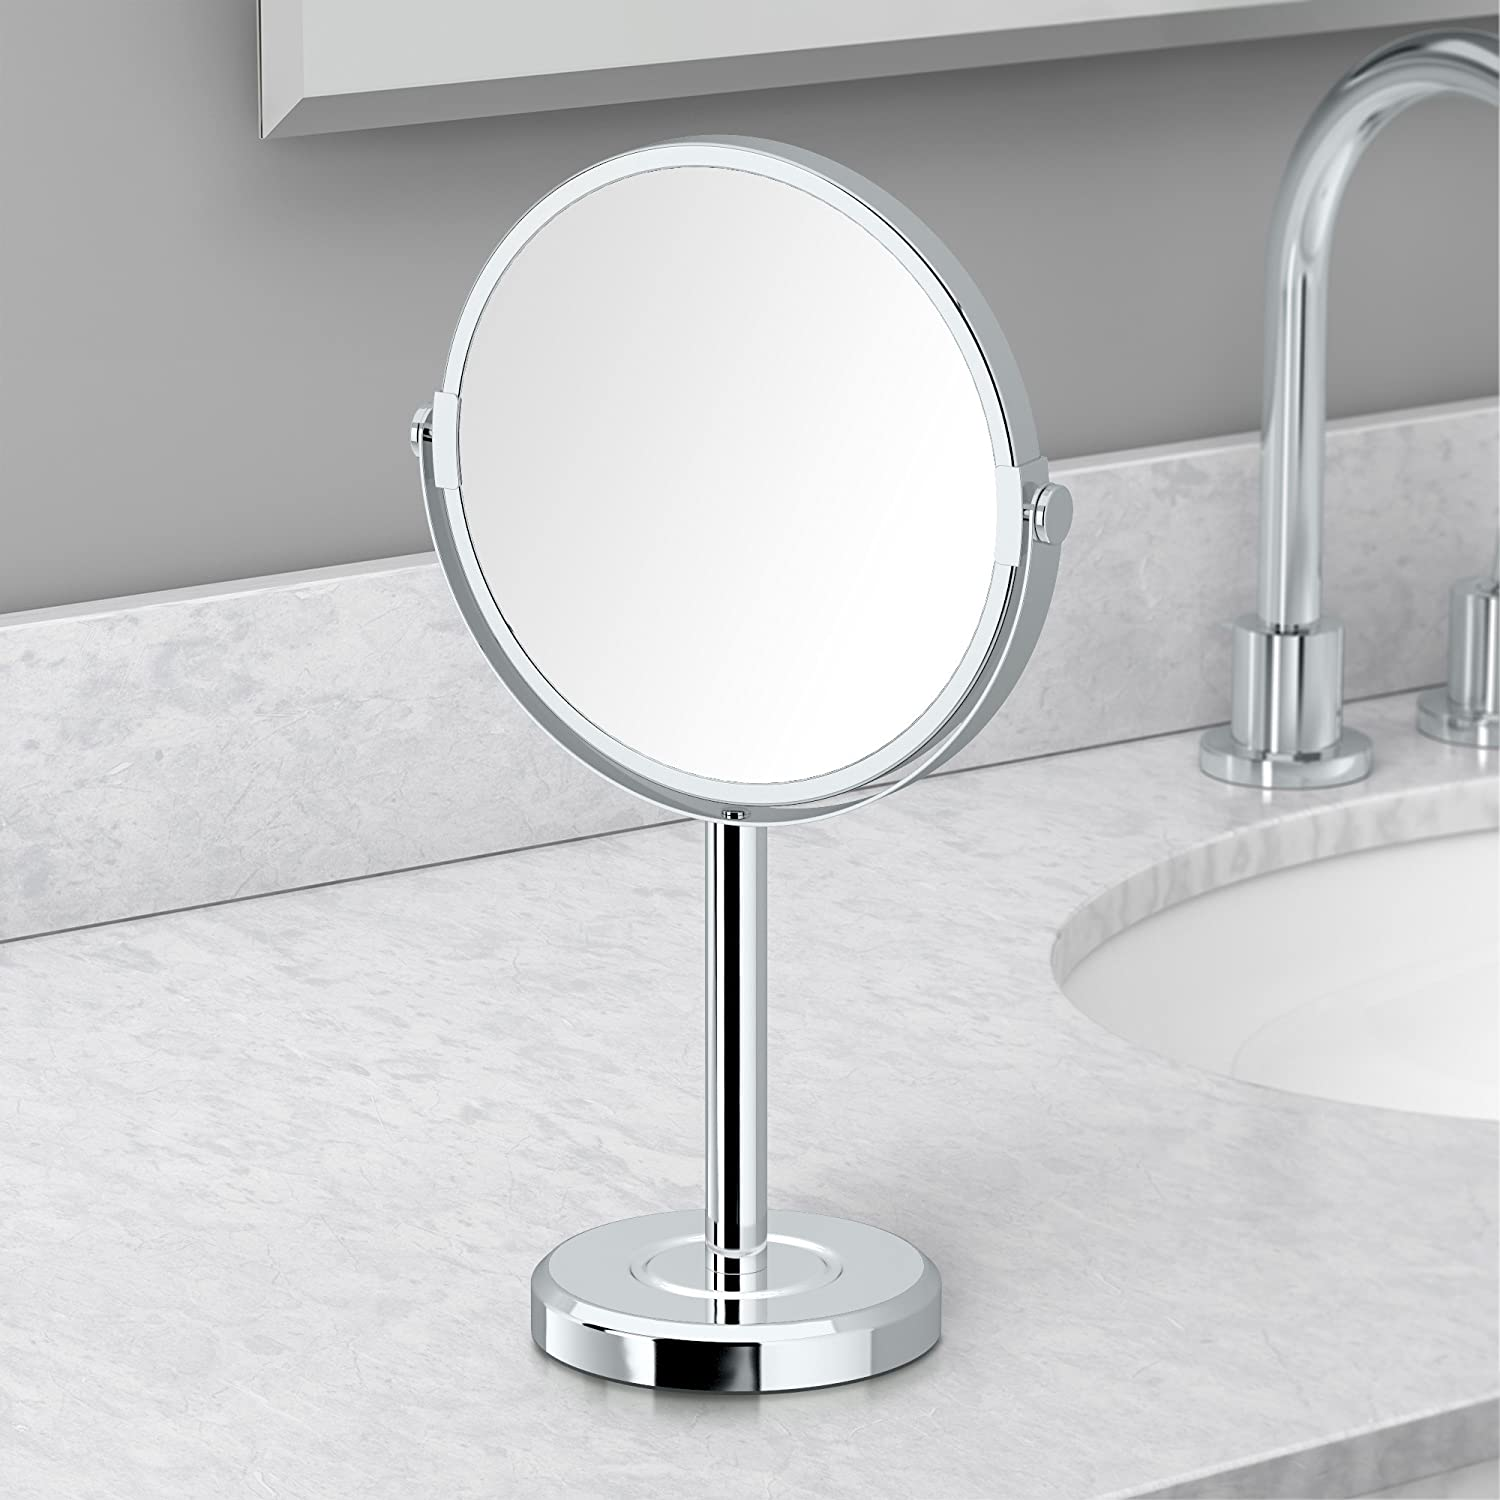 Minimalist Bathroom Counter: Gatco 1391 Magnified Table Mirror Chrome Click Image To Review